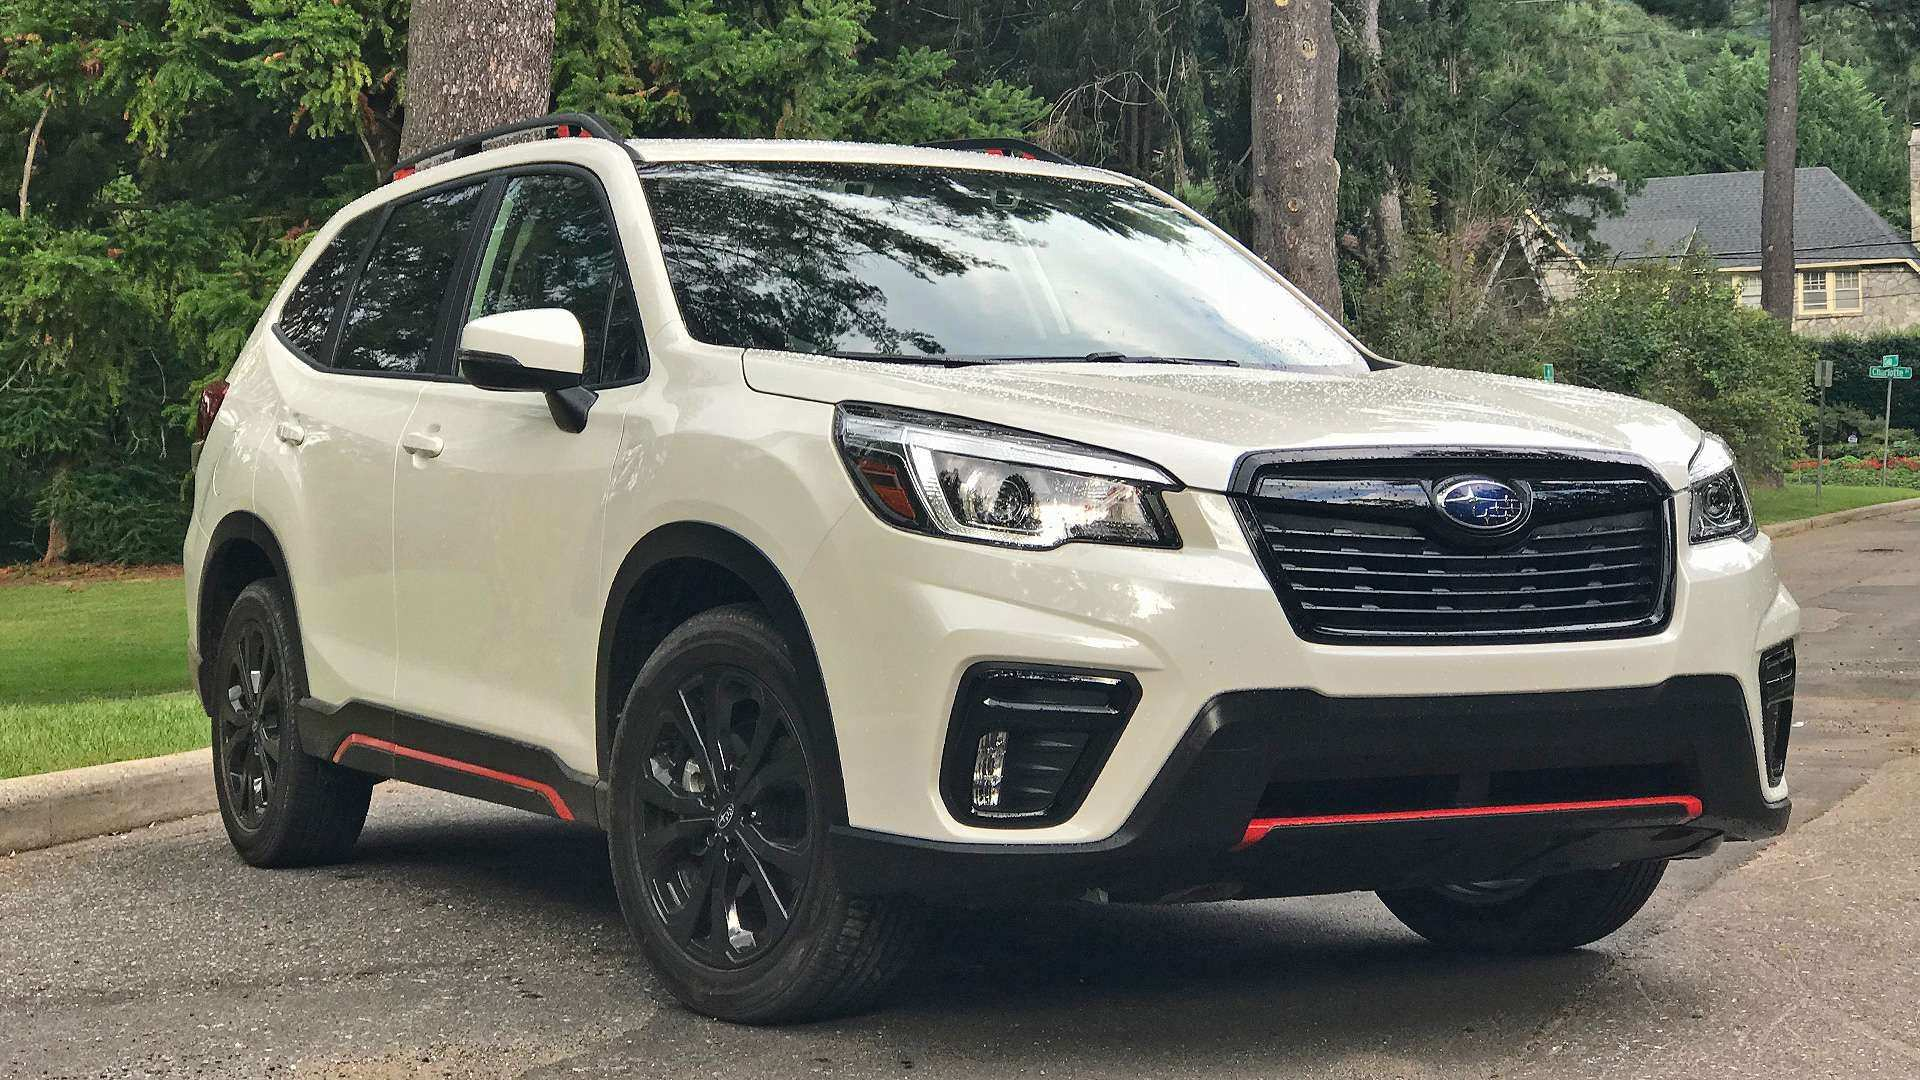 31 Great Subaru Forester 2019 Ground Clearance Rumors Redesign with Subaru Forester 2019 Ground Clearance Rumors